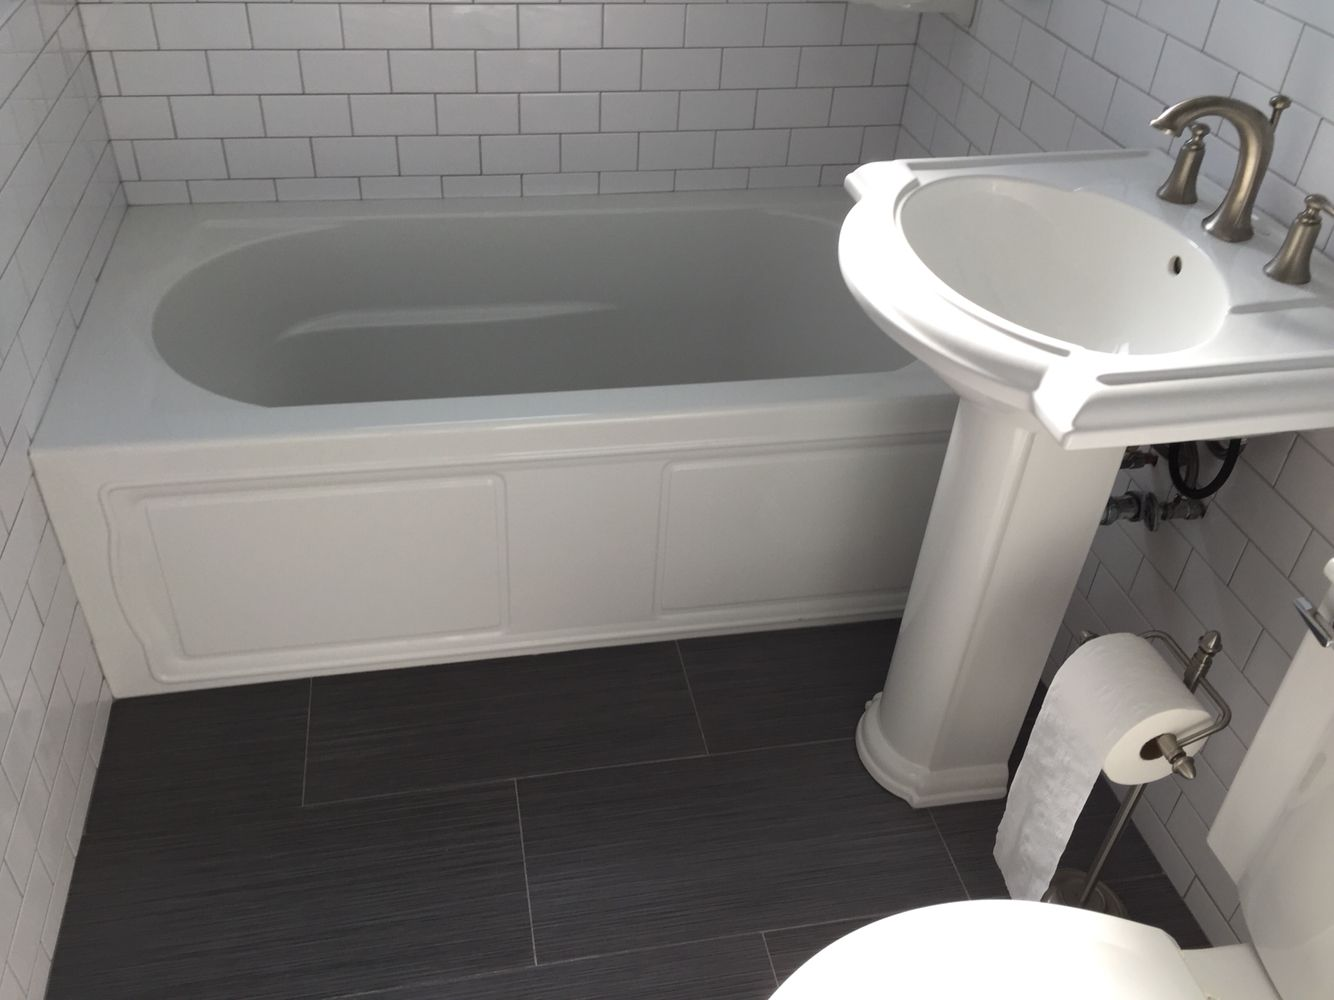 white apron left p kohler devonshire en and with flange integral hand bathtub acrylic tub feet home tile drain in